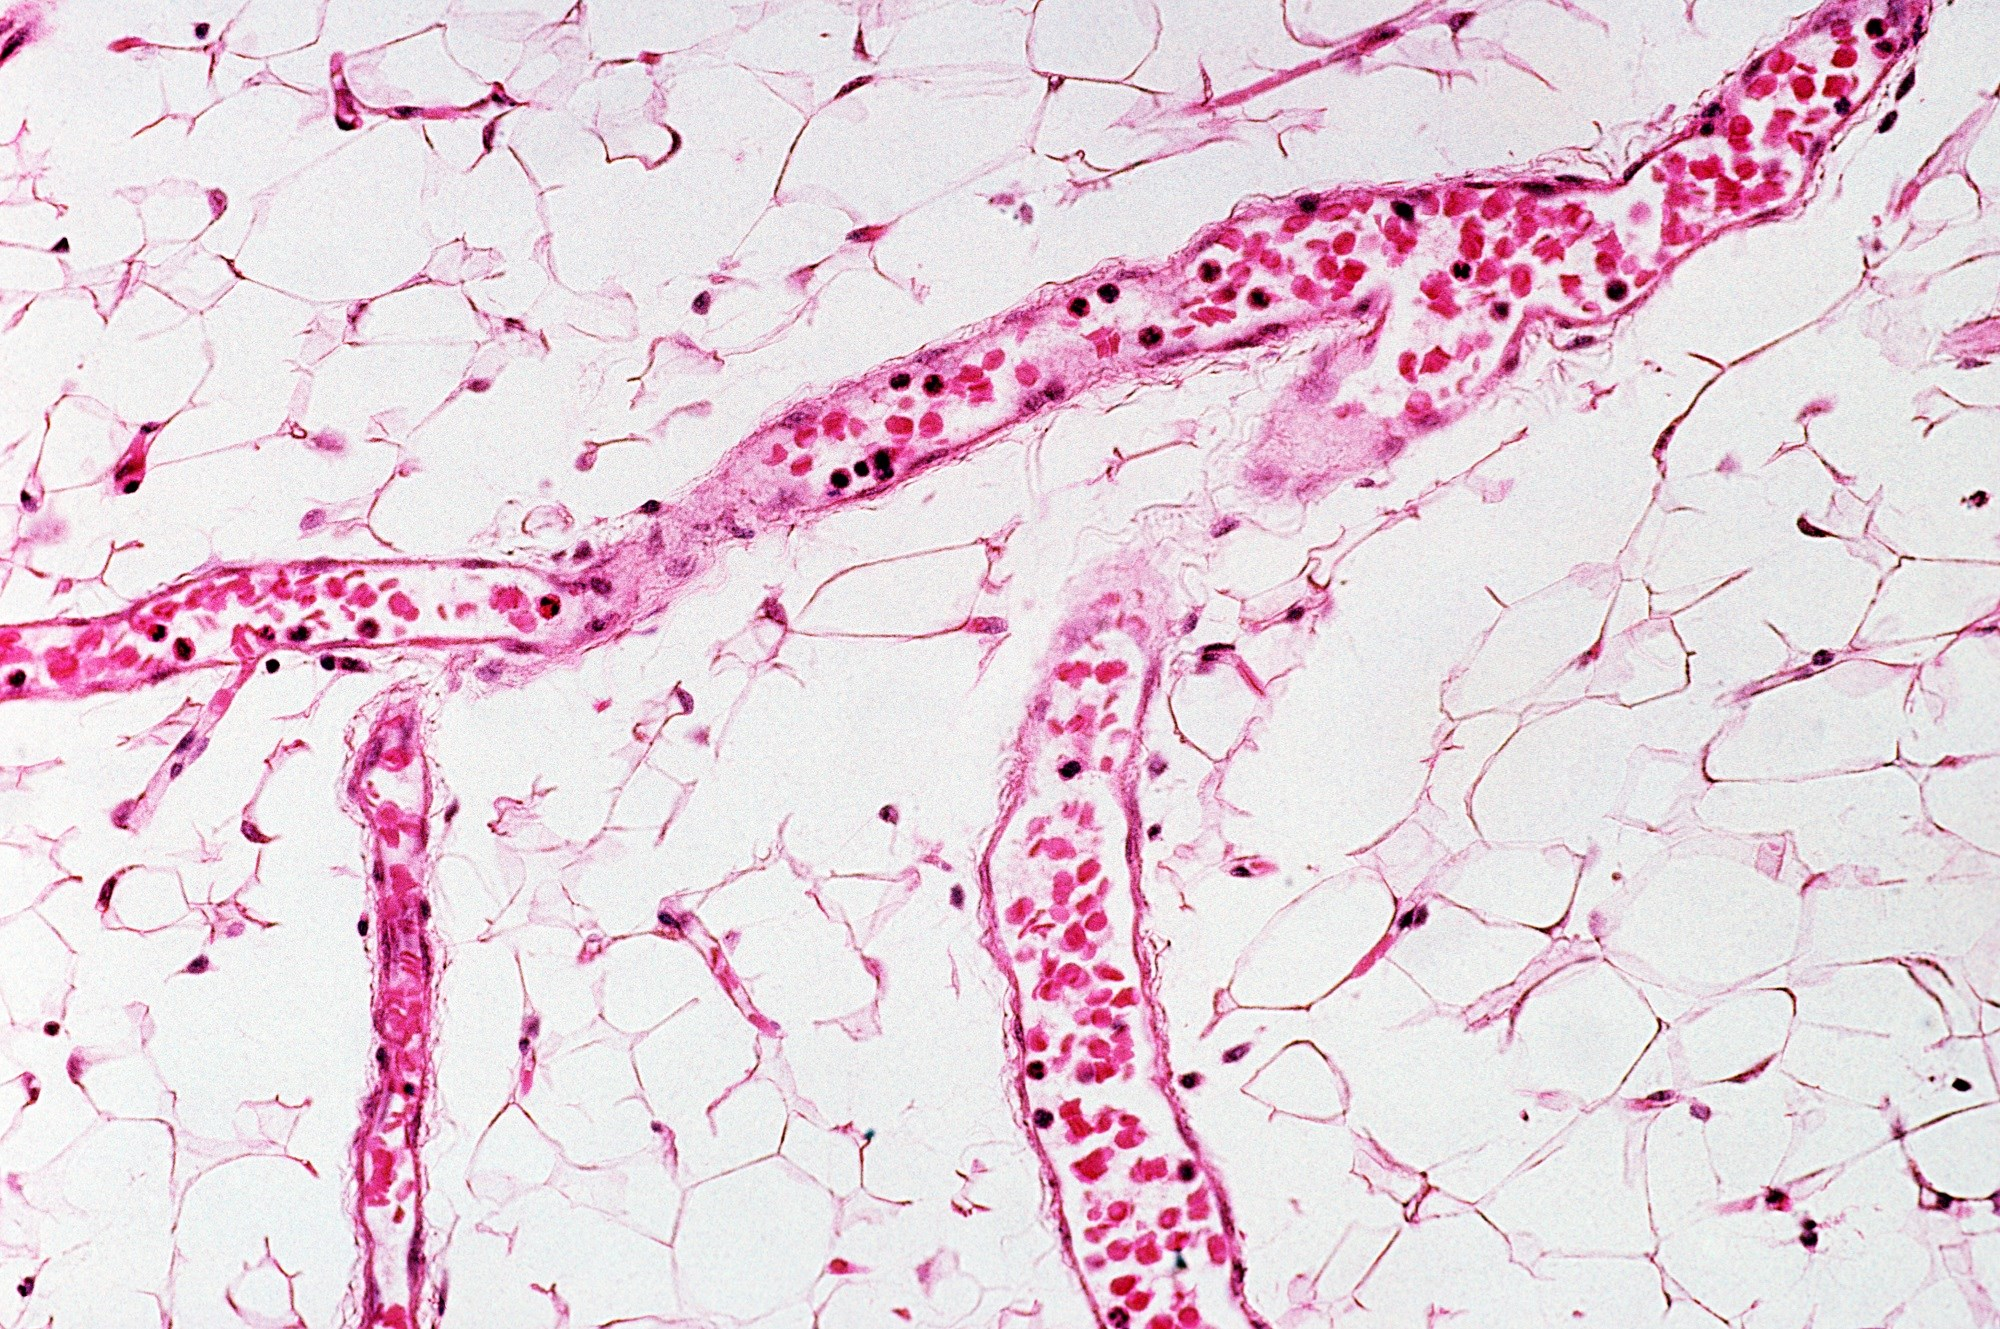 Low Nailfold Capillary Density Associated With Lung Involvement in Juvenile Dermatomyositis